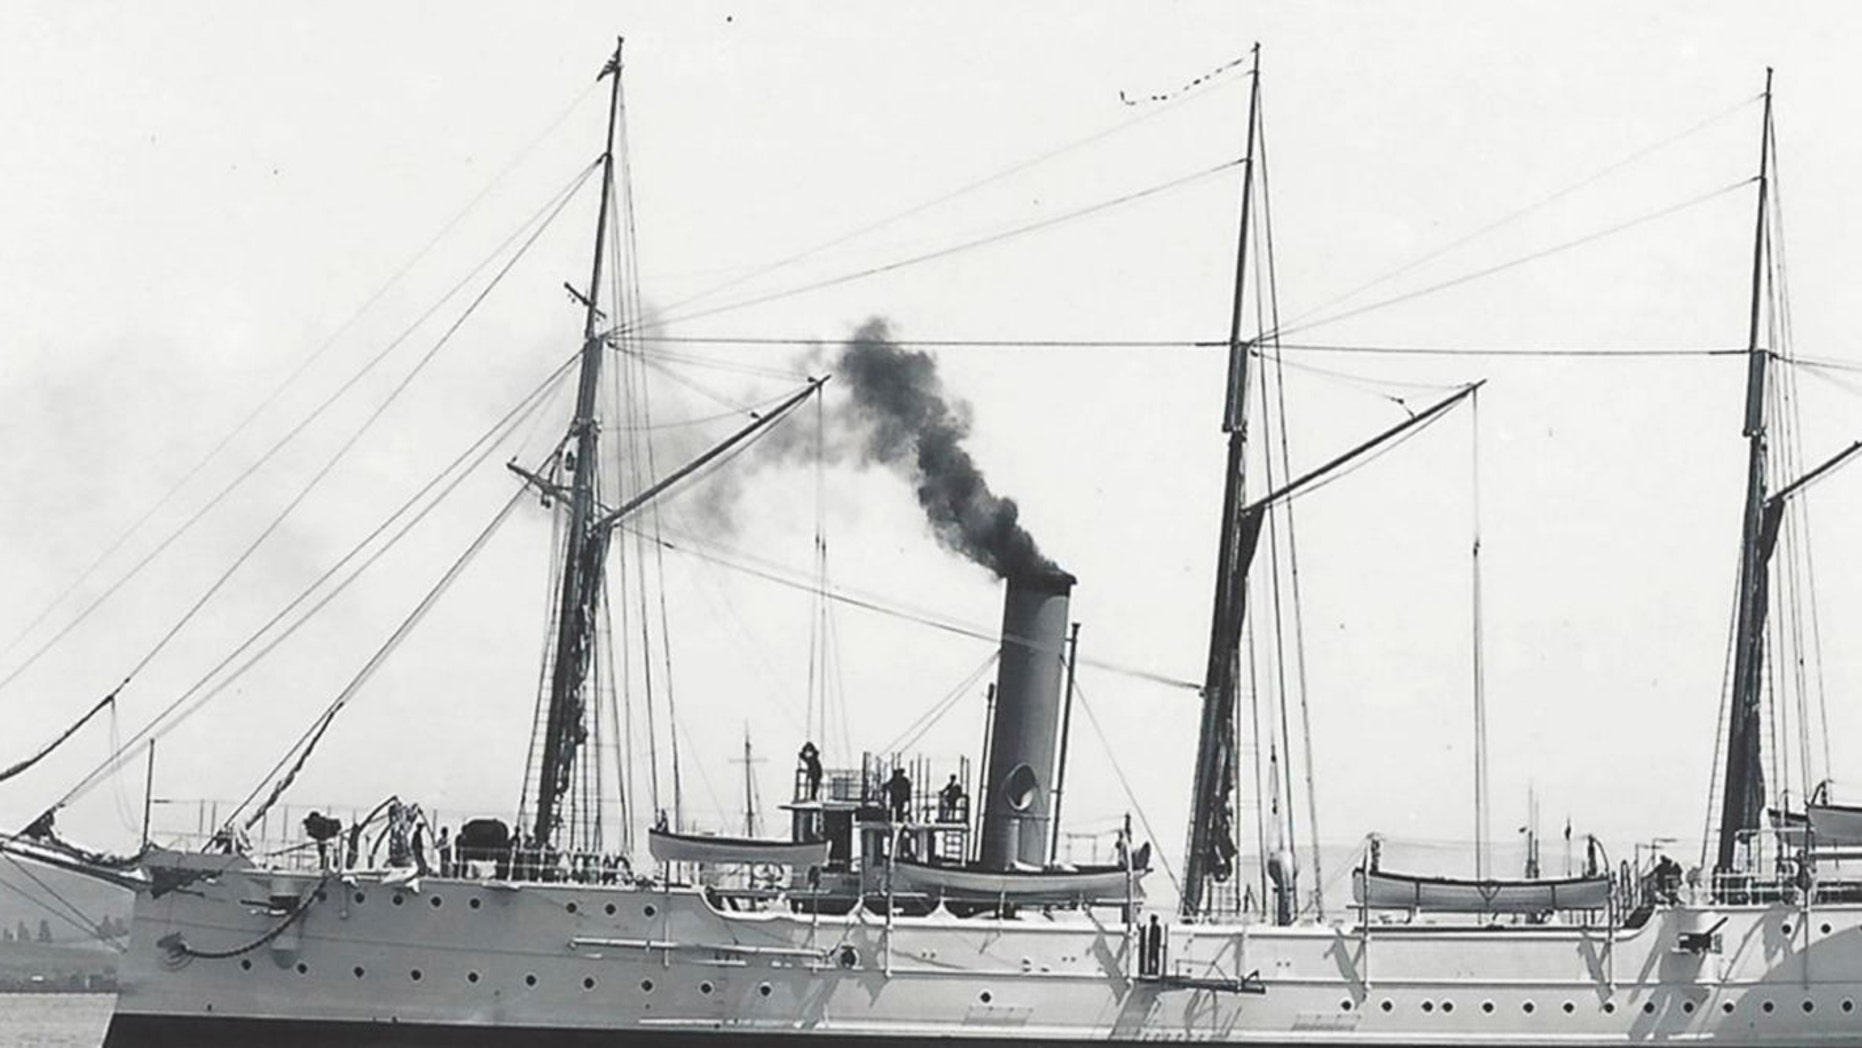 This undated image provided by NOAA shows the USCG Cutter McCulloch that was launched in 1896. Researchers discovered the remains of a San Francisco-based U.S. Coast Guard cutter that first set out to sea during the Spanish American War and sank off the coast of Southern California 100 years ago, officials announced. On Tuesday, June 13, 2017, officials will host a news conference to highlight the ship's history and to pay tribute to the ship and its crews, including two crewmen who died in the line of duty. (NOAA/Mare Island Museum via AP)